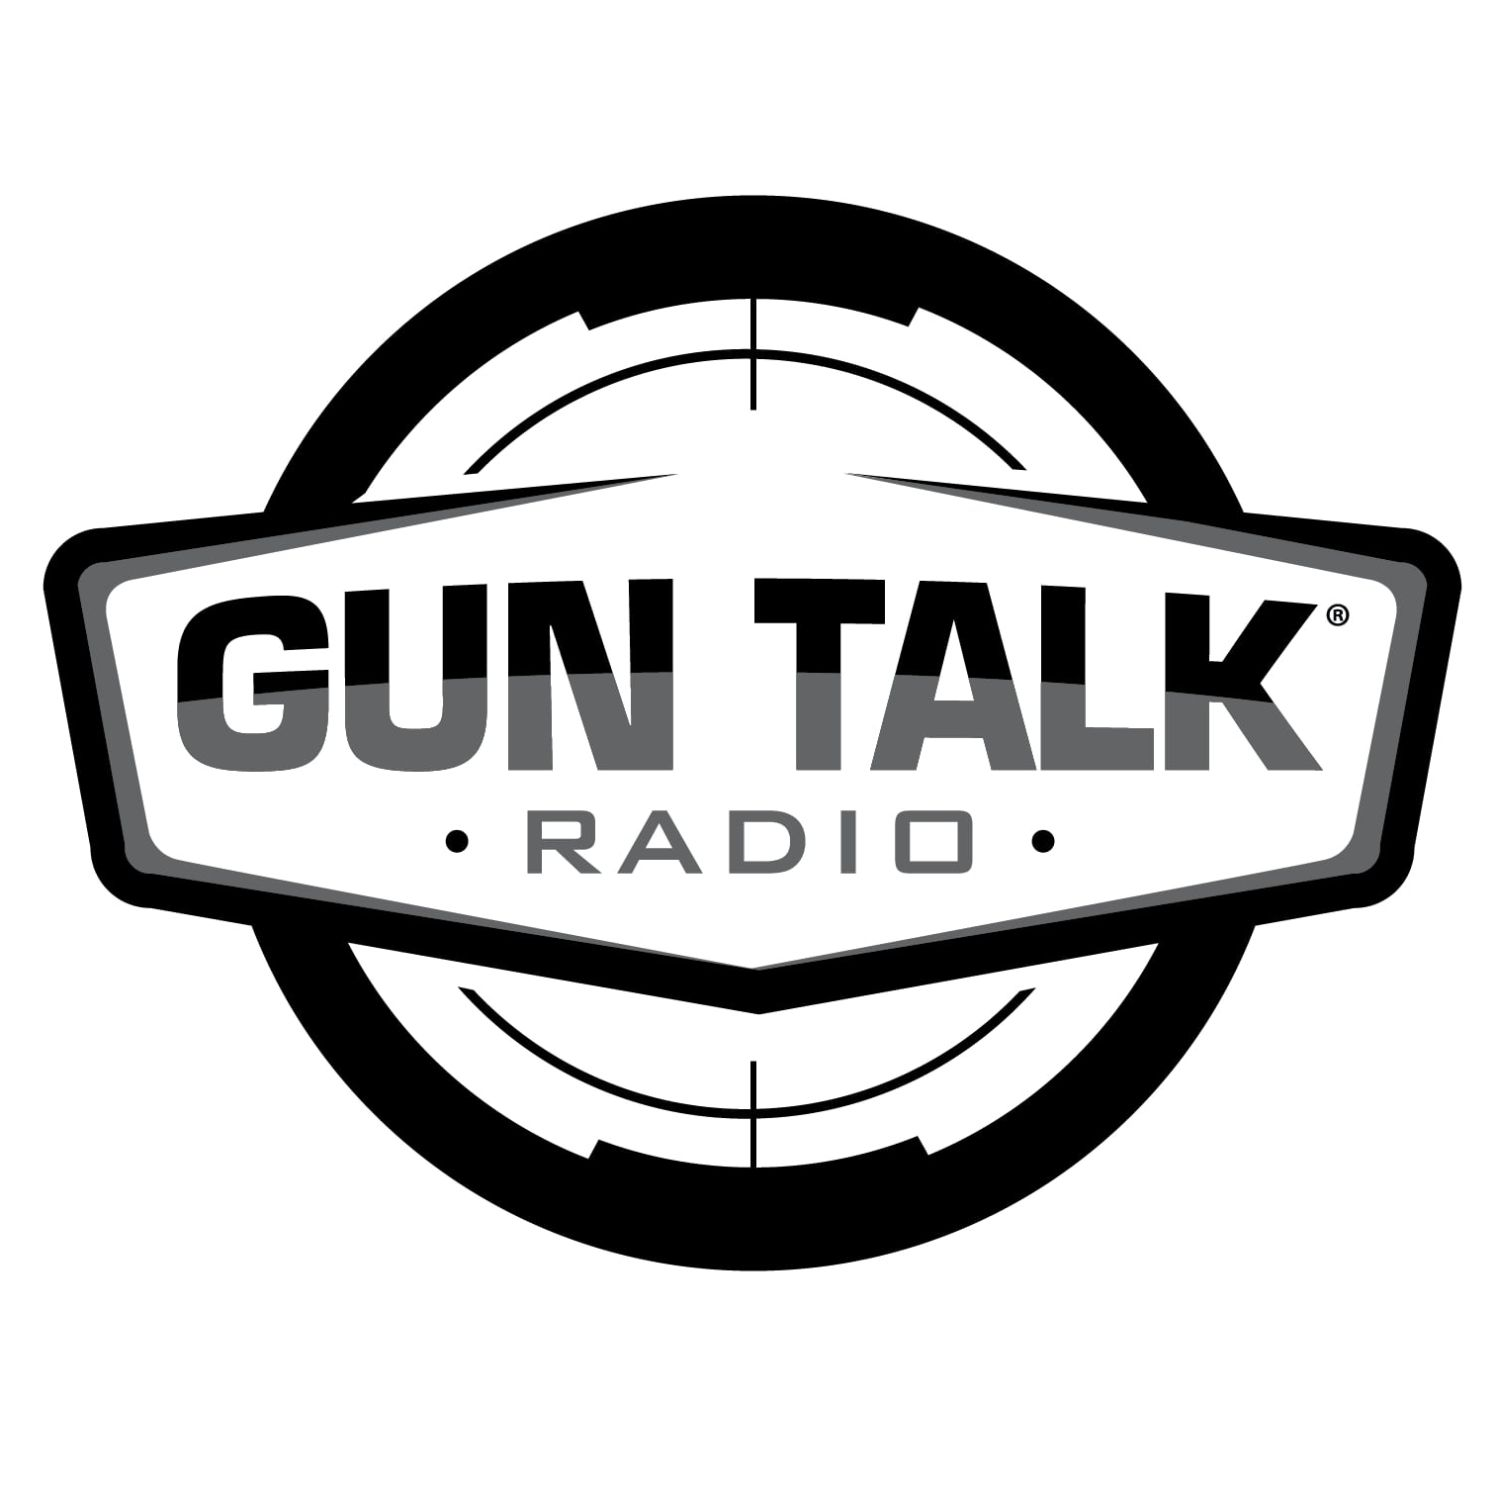 Artwork for Guntalk 2010-02-21 Part B